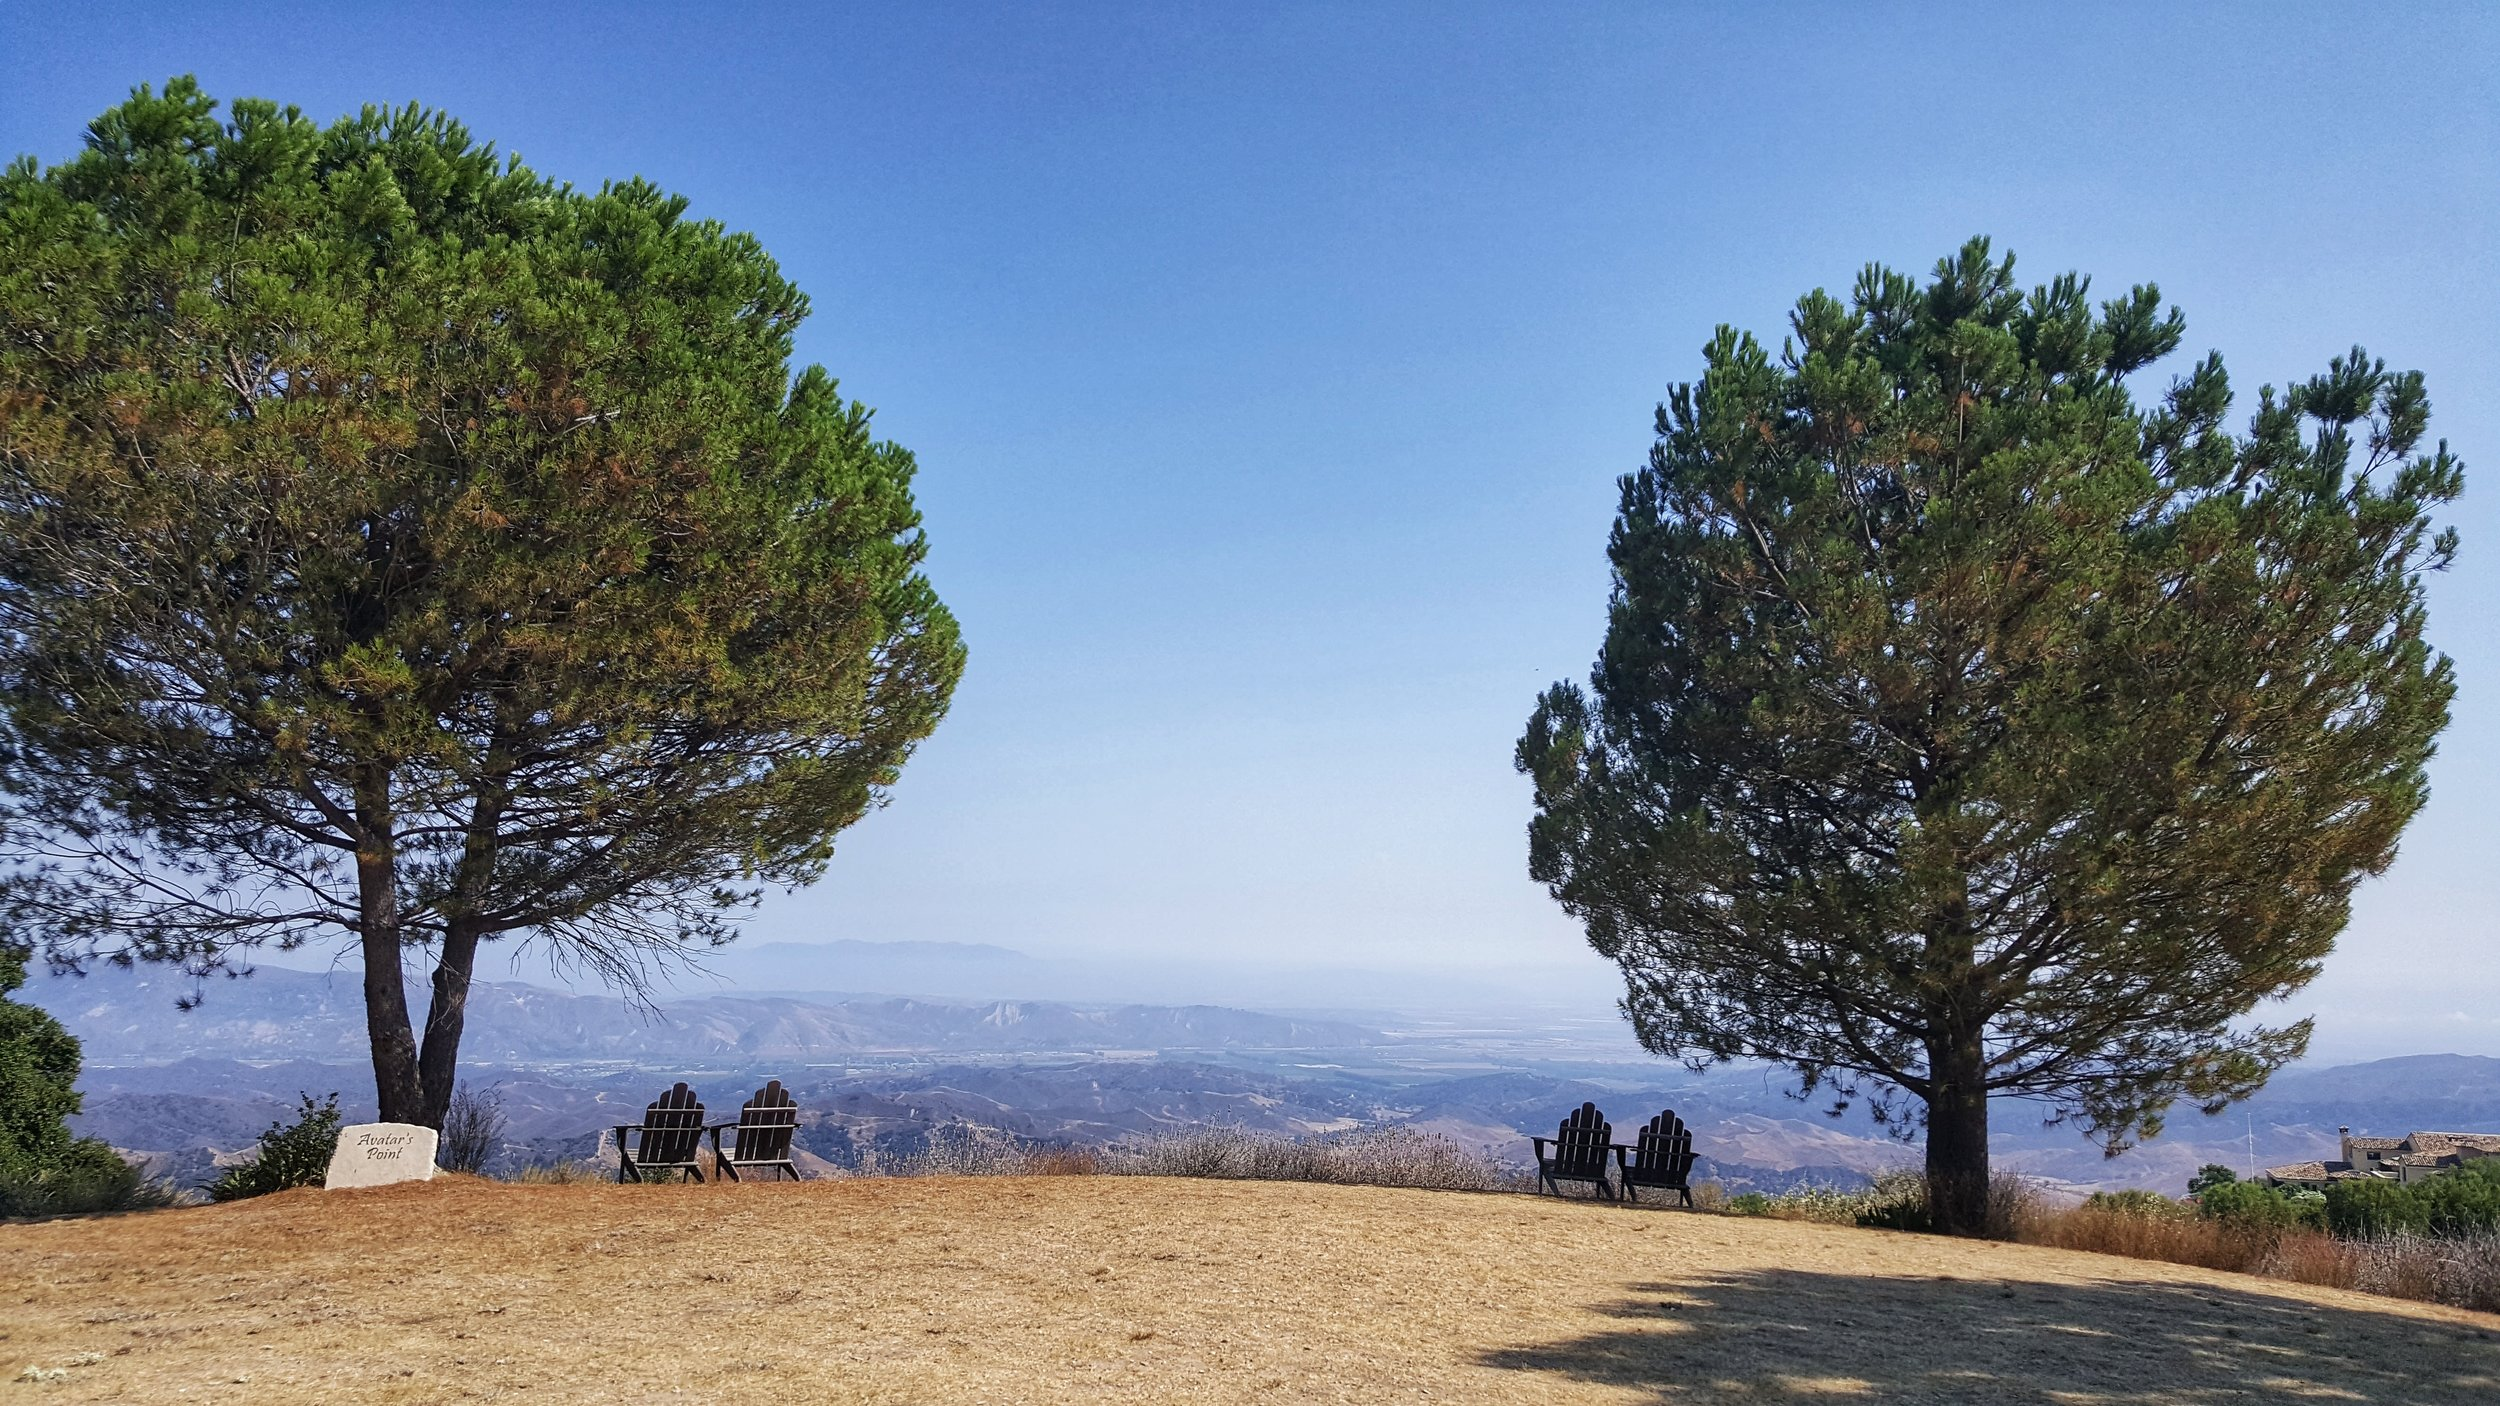 TWO OF THE PINE TREES at Avatar's Point in 2017  before  the Thomas Fire on December 4, 2017. The pine trees are still standing. The Avatar's Point sign is blackened.The two chairs on the left are completely gone, and the two chairs on the right are charred and burned. (Photo: Stephanie Ervin)